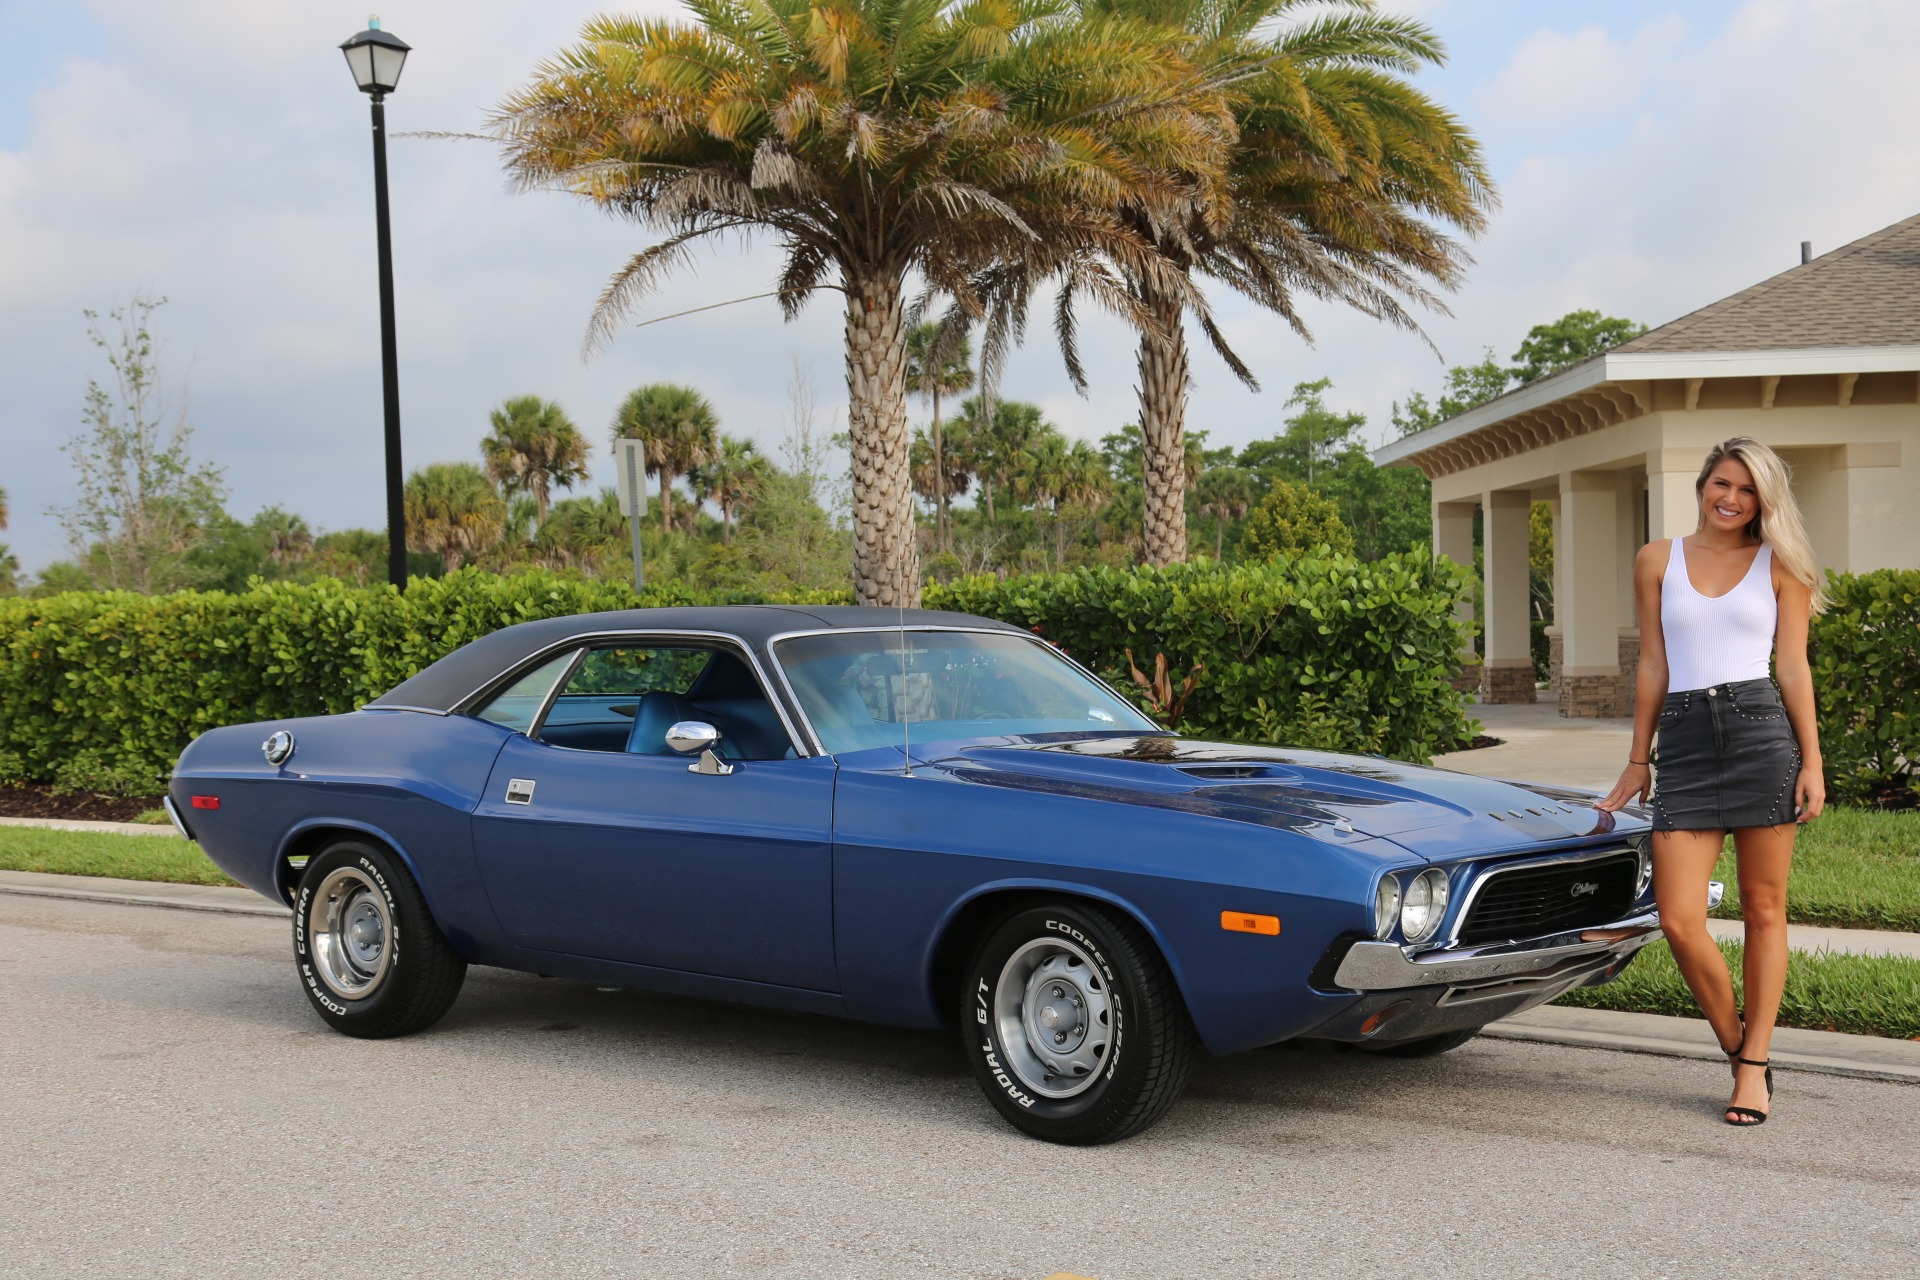 Used 1973 Dodge Challenger 360 V8 Automatic for sale Sold at Muscle Cars for Sale Inc. in Fort Myers FL 33912 3